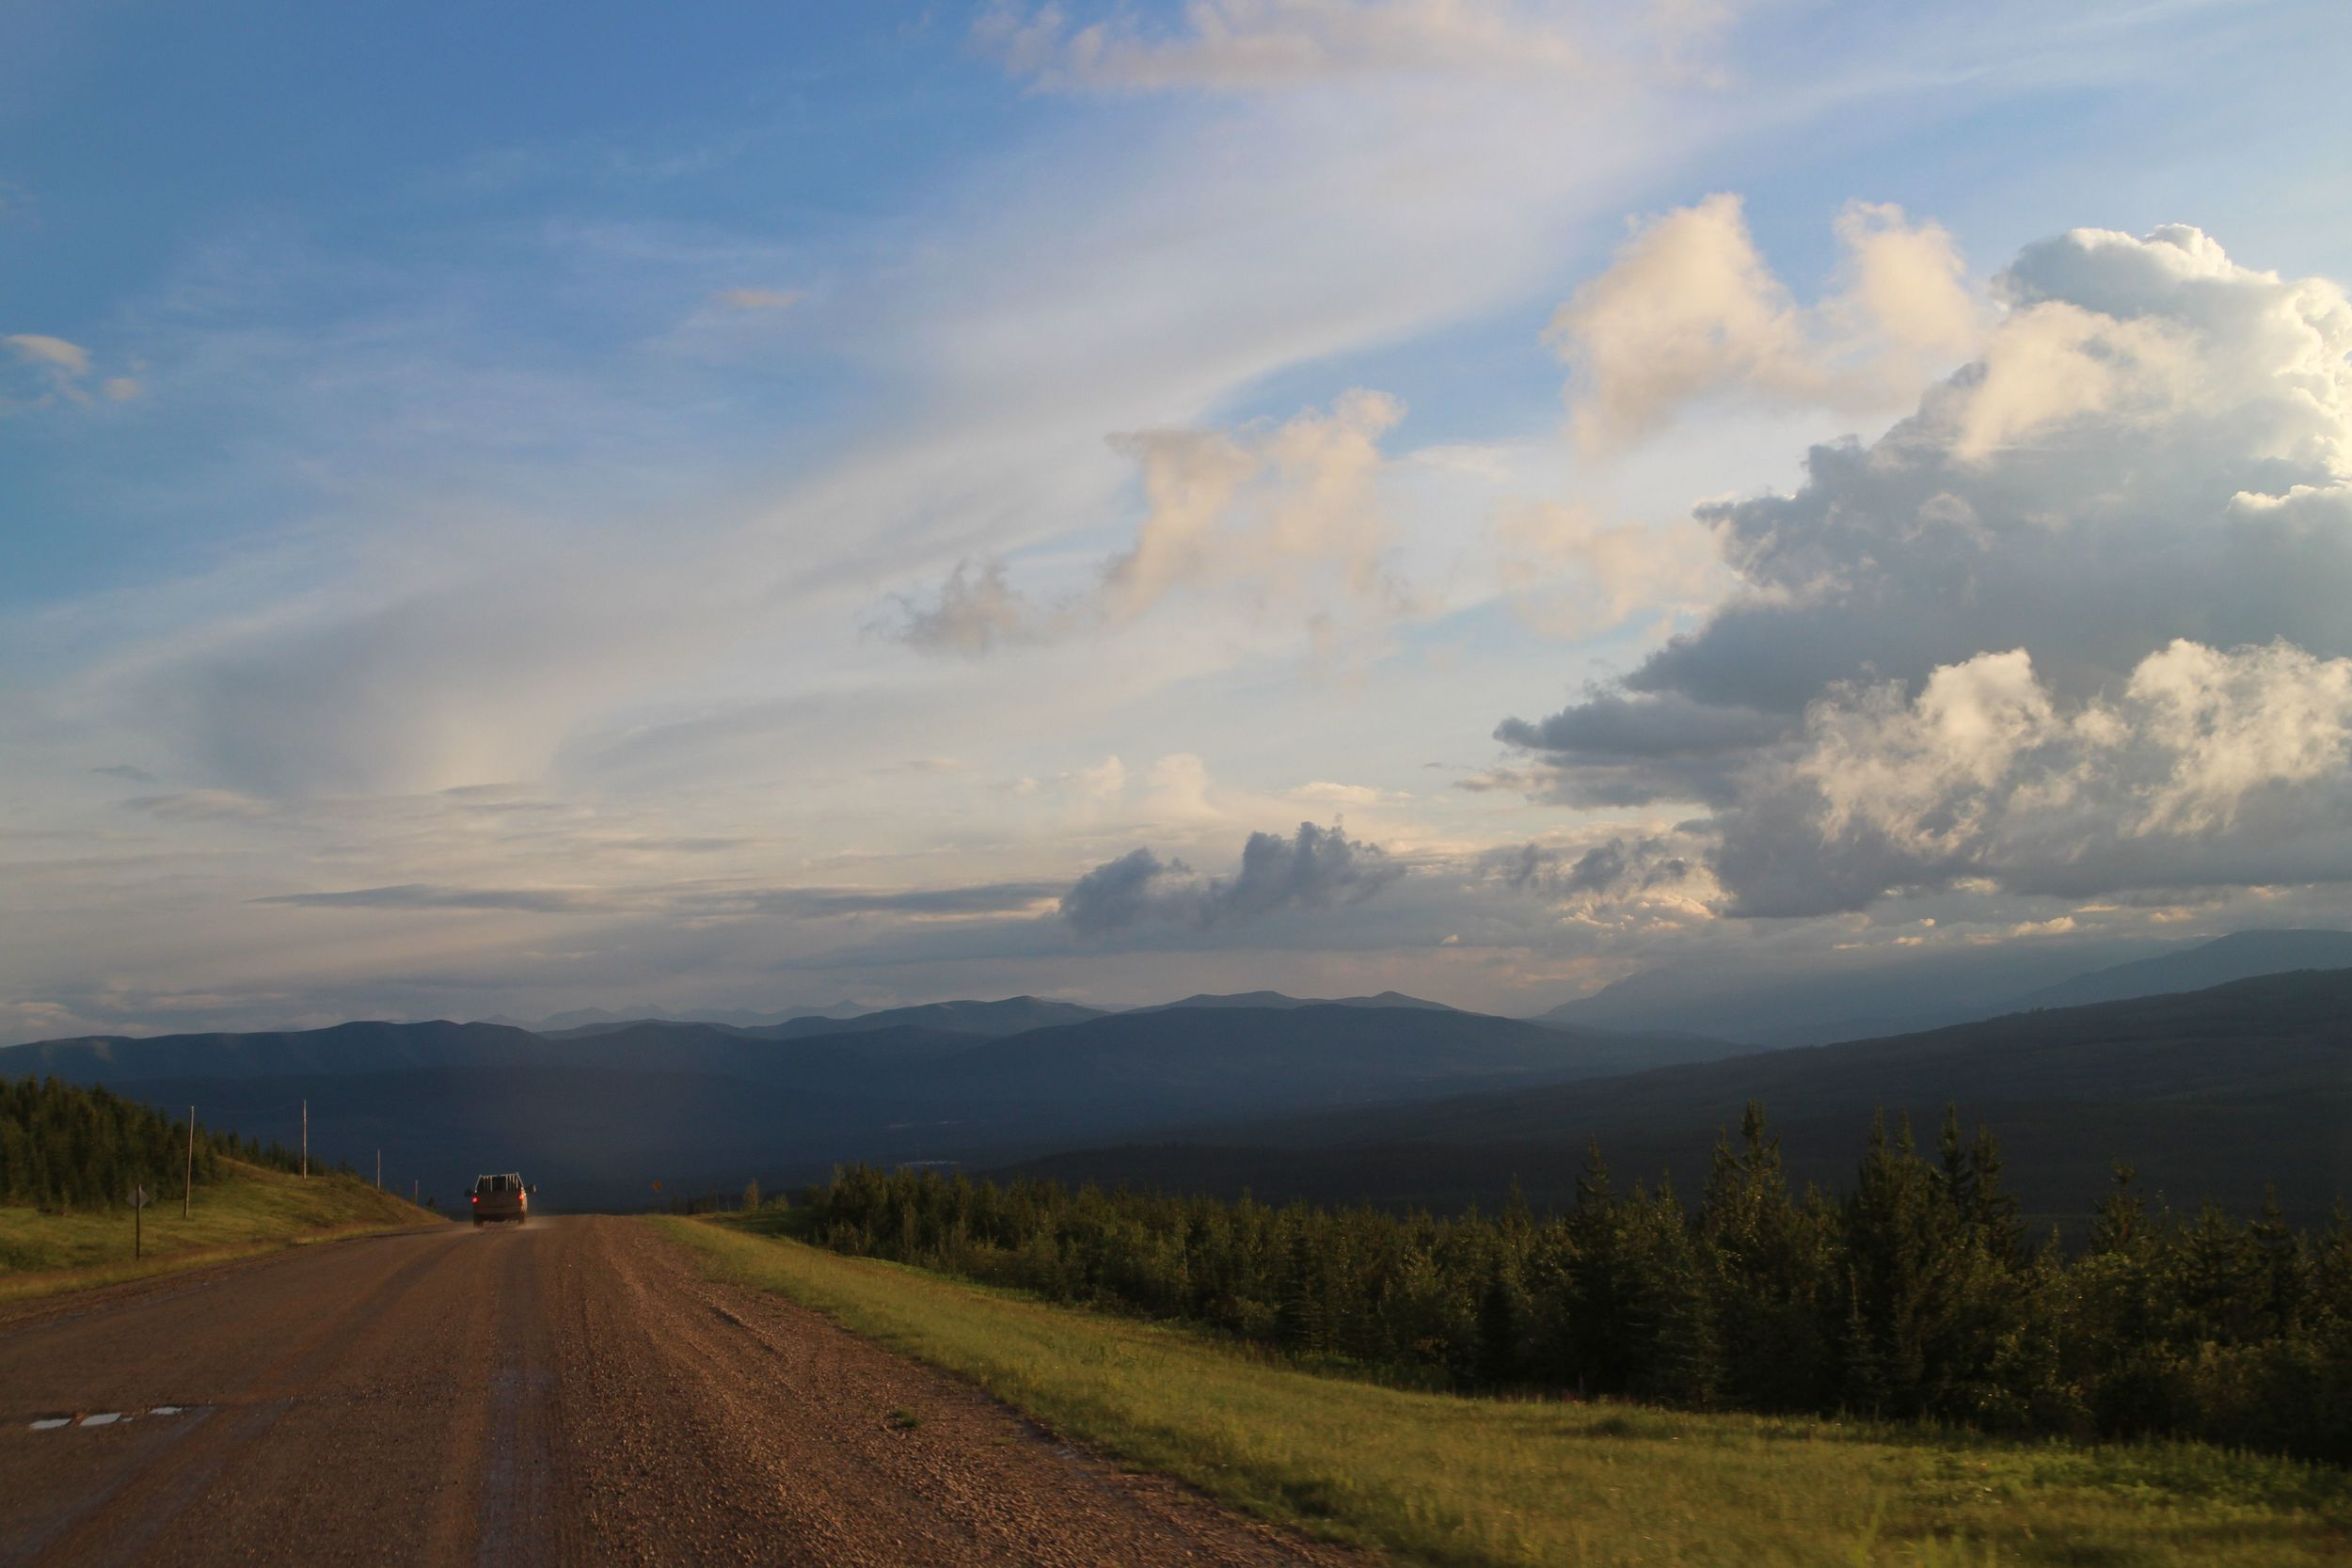 The big skies of Alberta and the big ridges of the Forestry Trunk Road